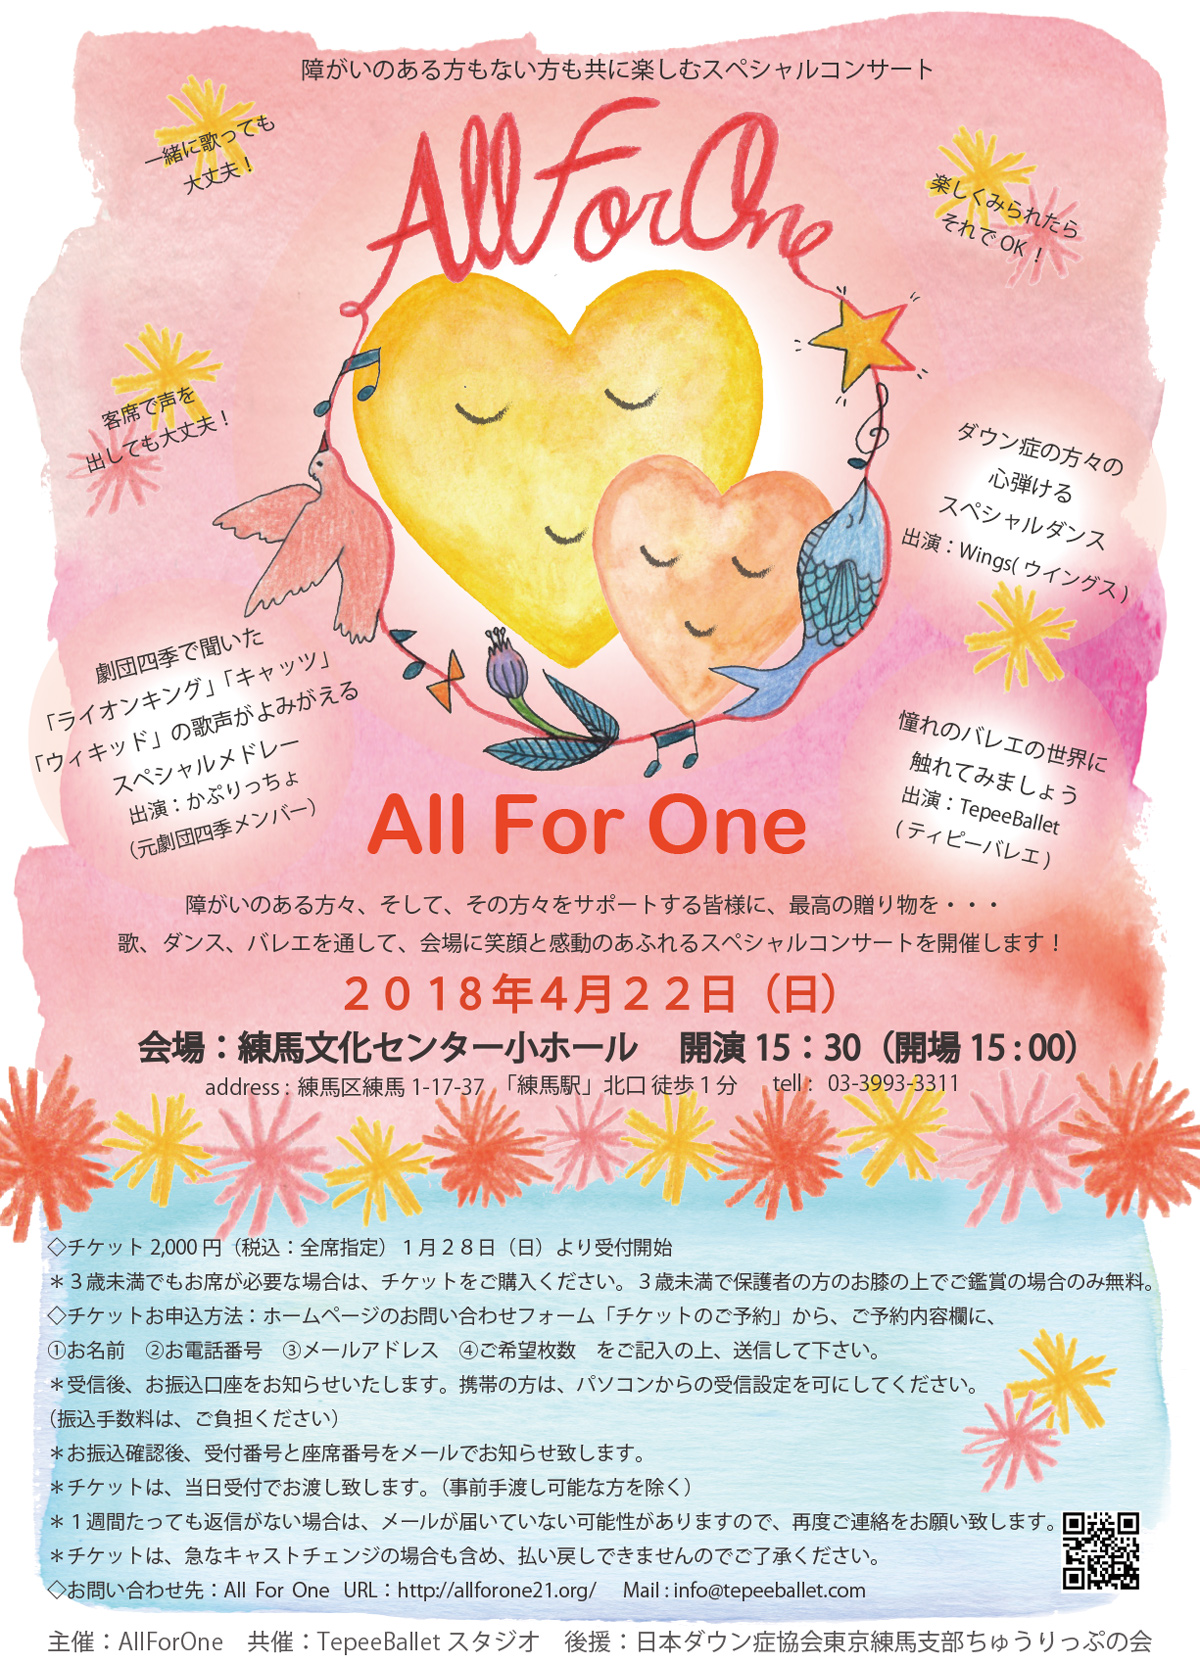 All For One 2018 スペシャルコンサート